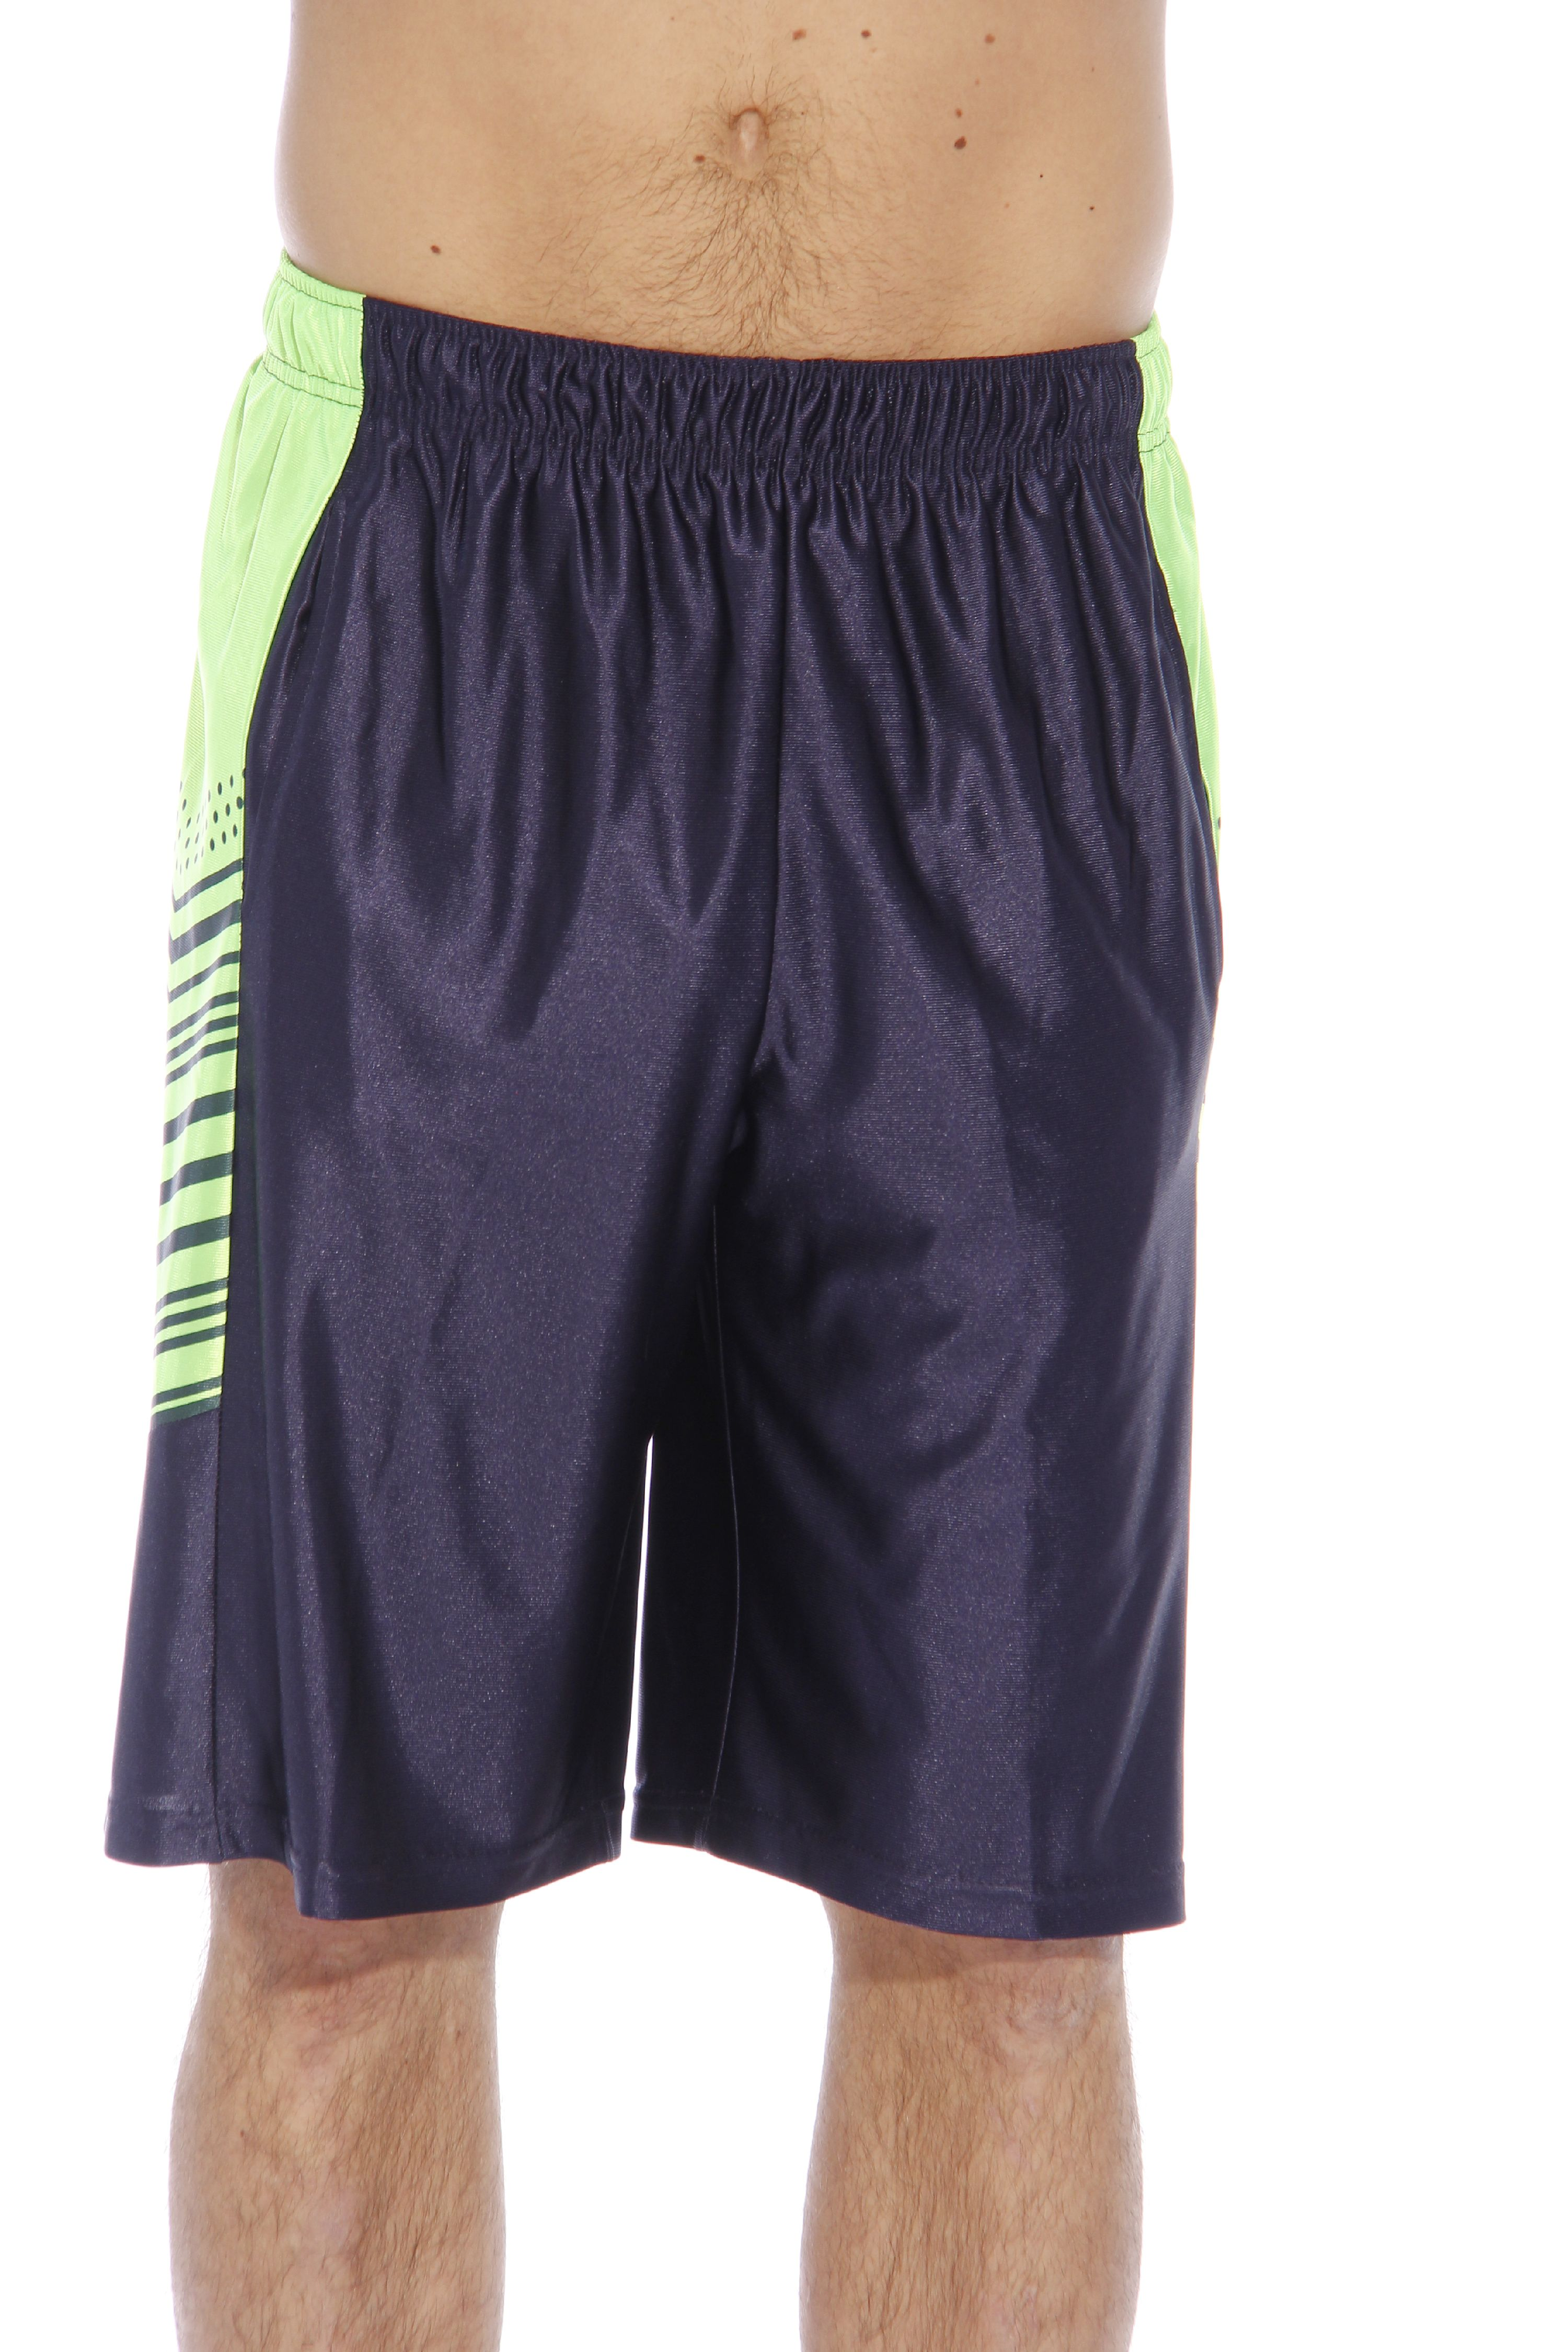 At The Buzzer Athletic Basketball Shorts for Men